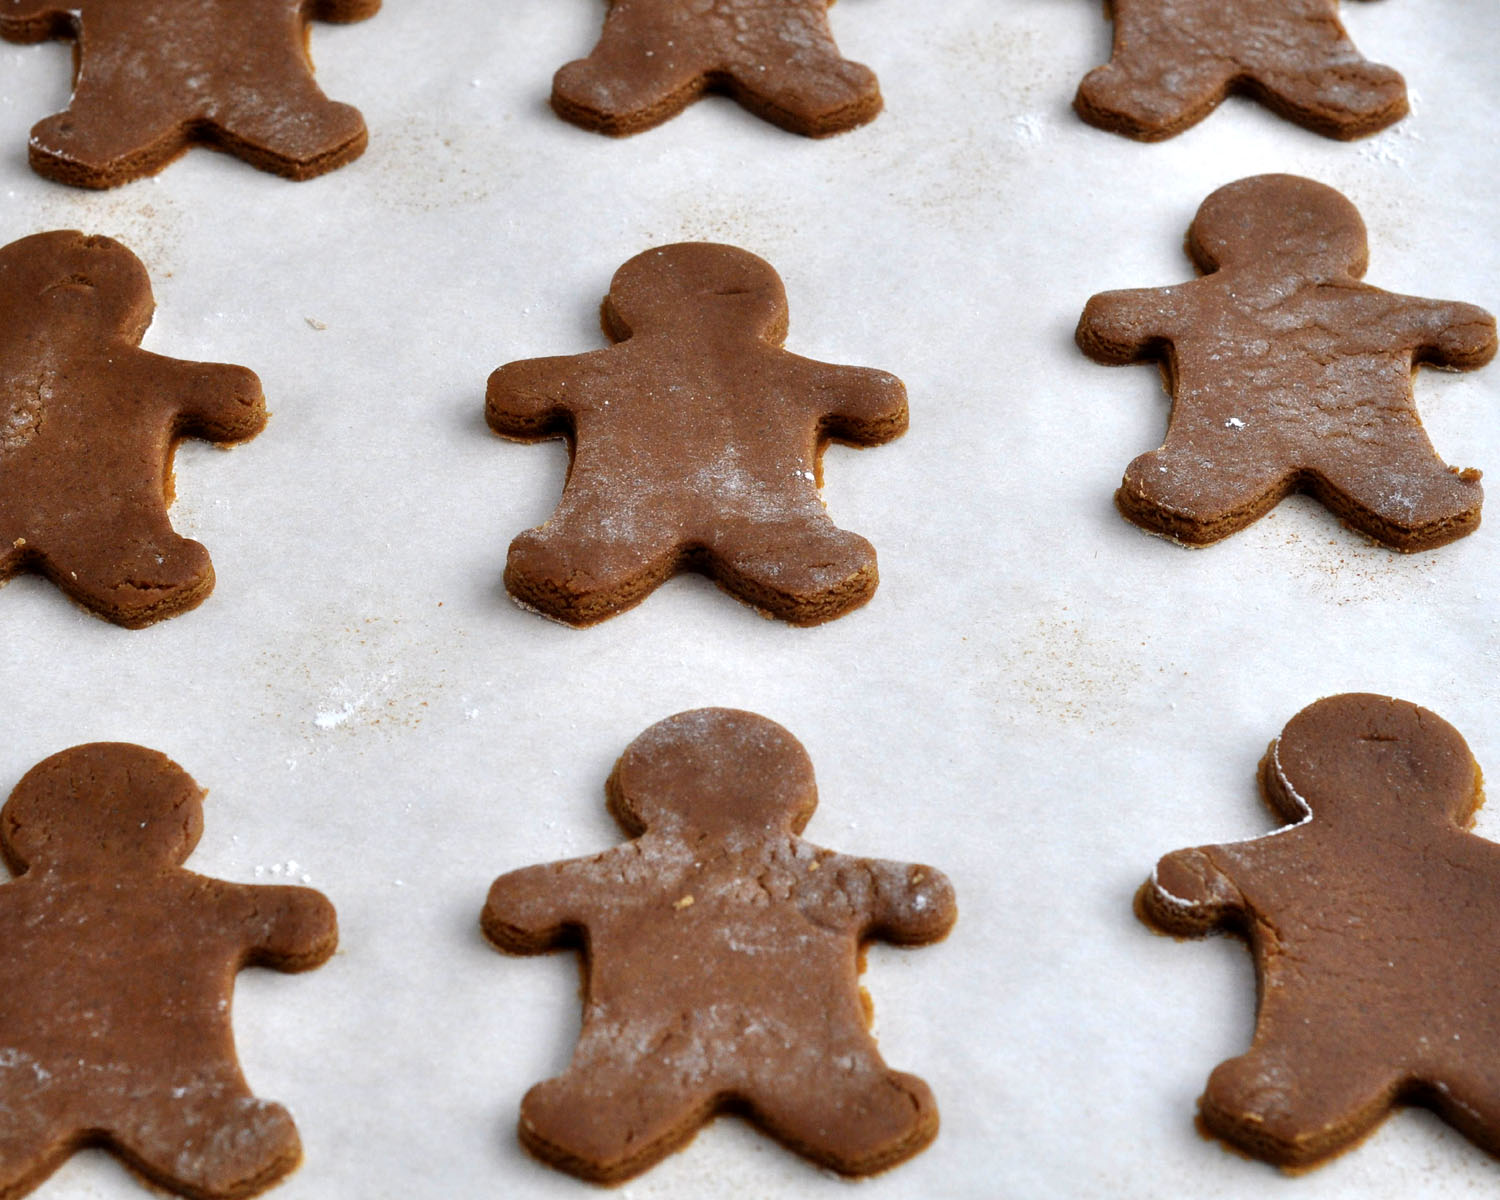 Gingerbread Man Cookie Template Cut the gingerbread men out